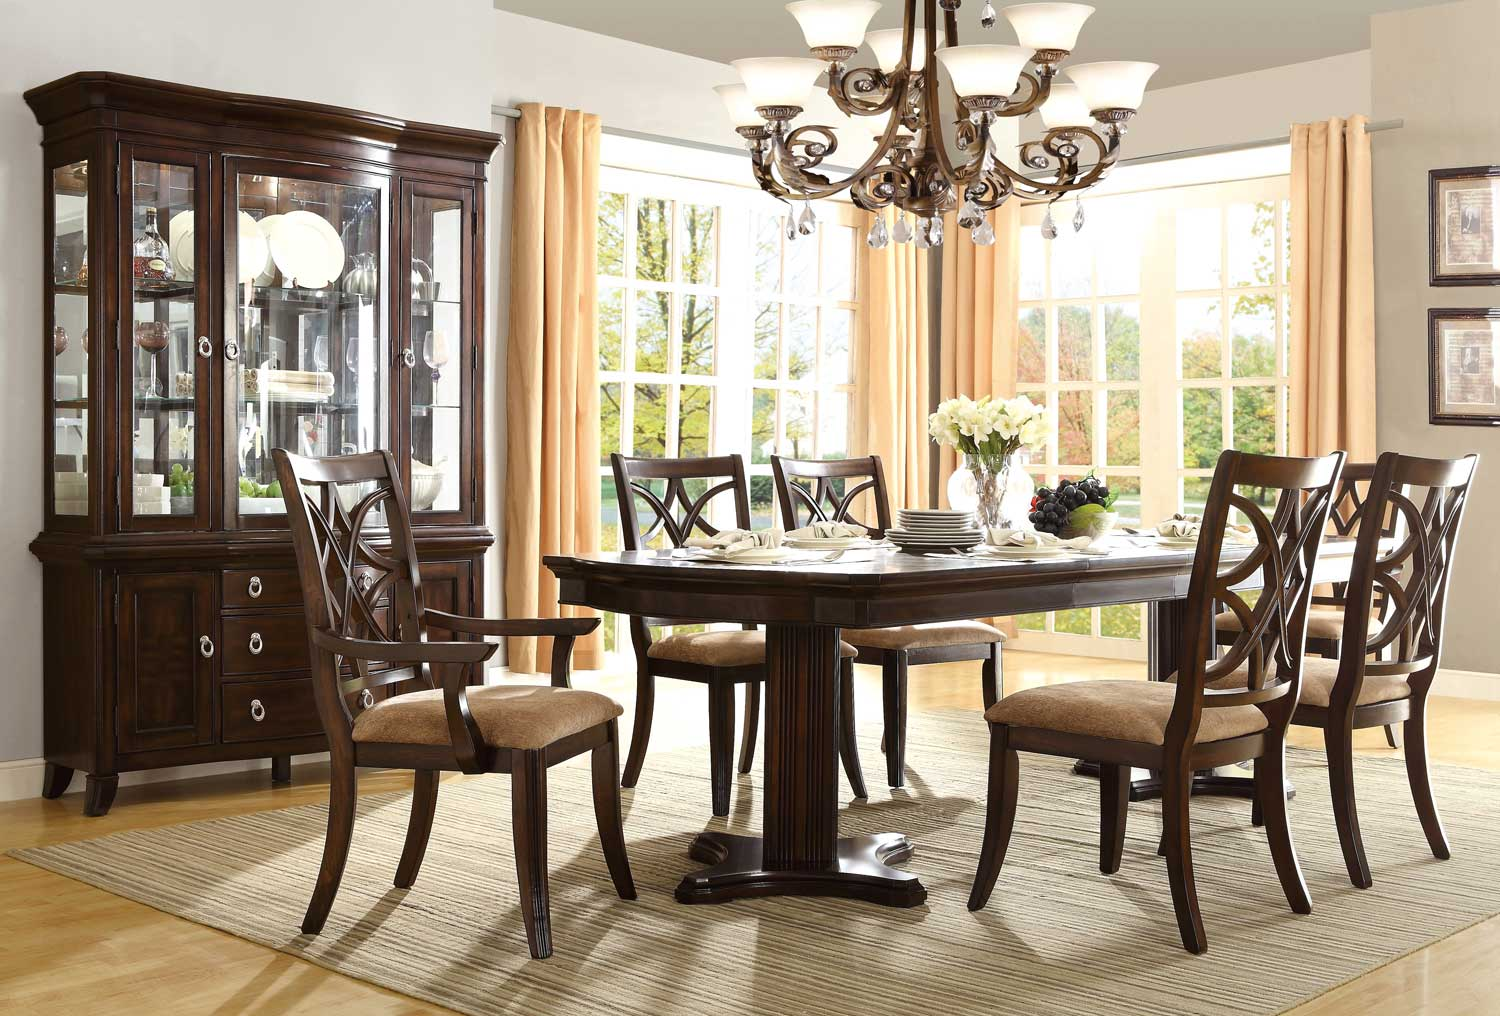 Homelegance Keegan Double Pedestal Dining Set - Neutral Tone Fabric - Cherry